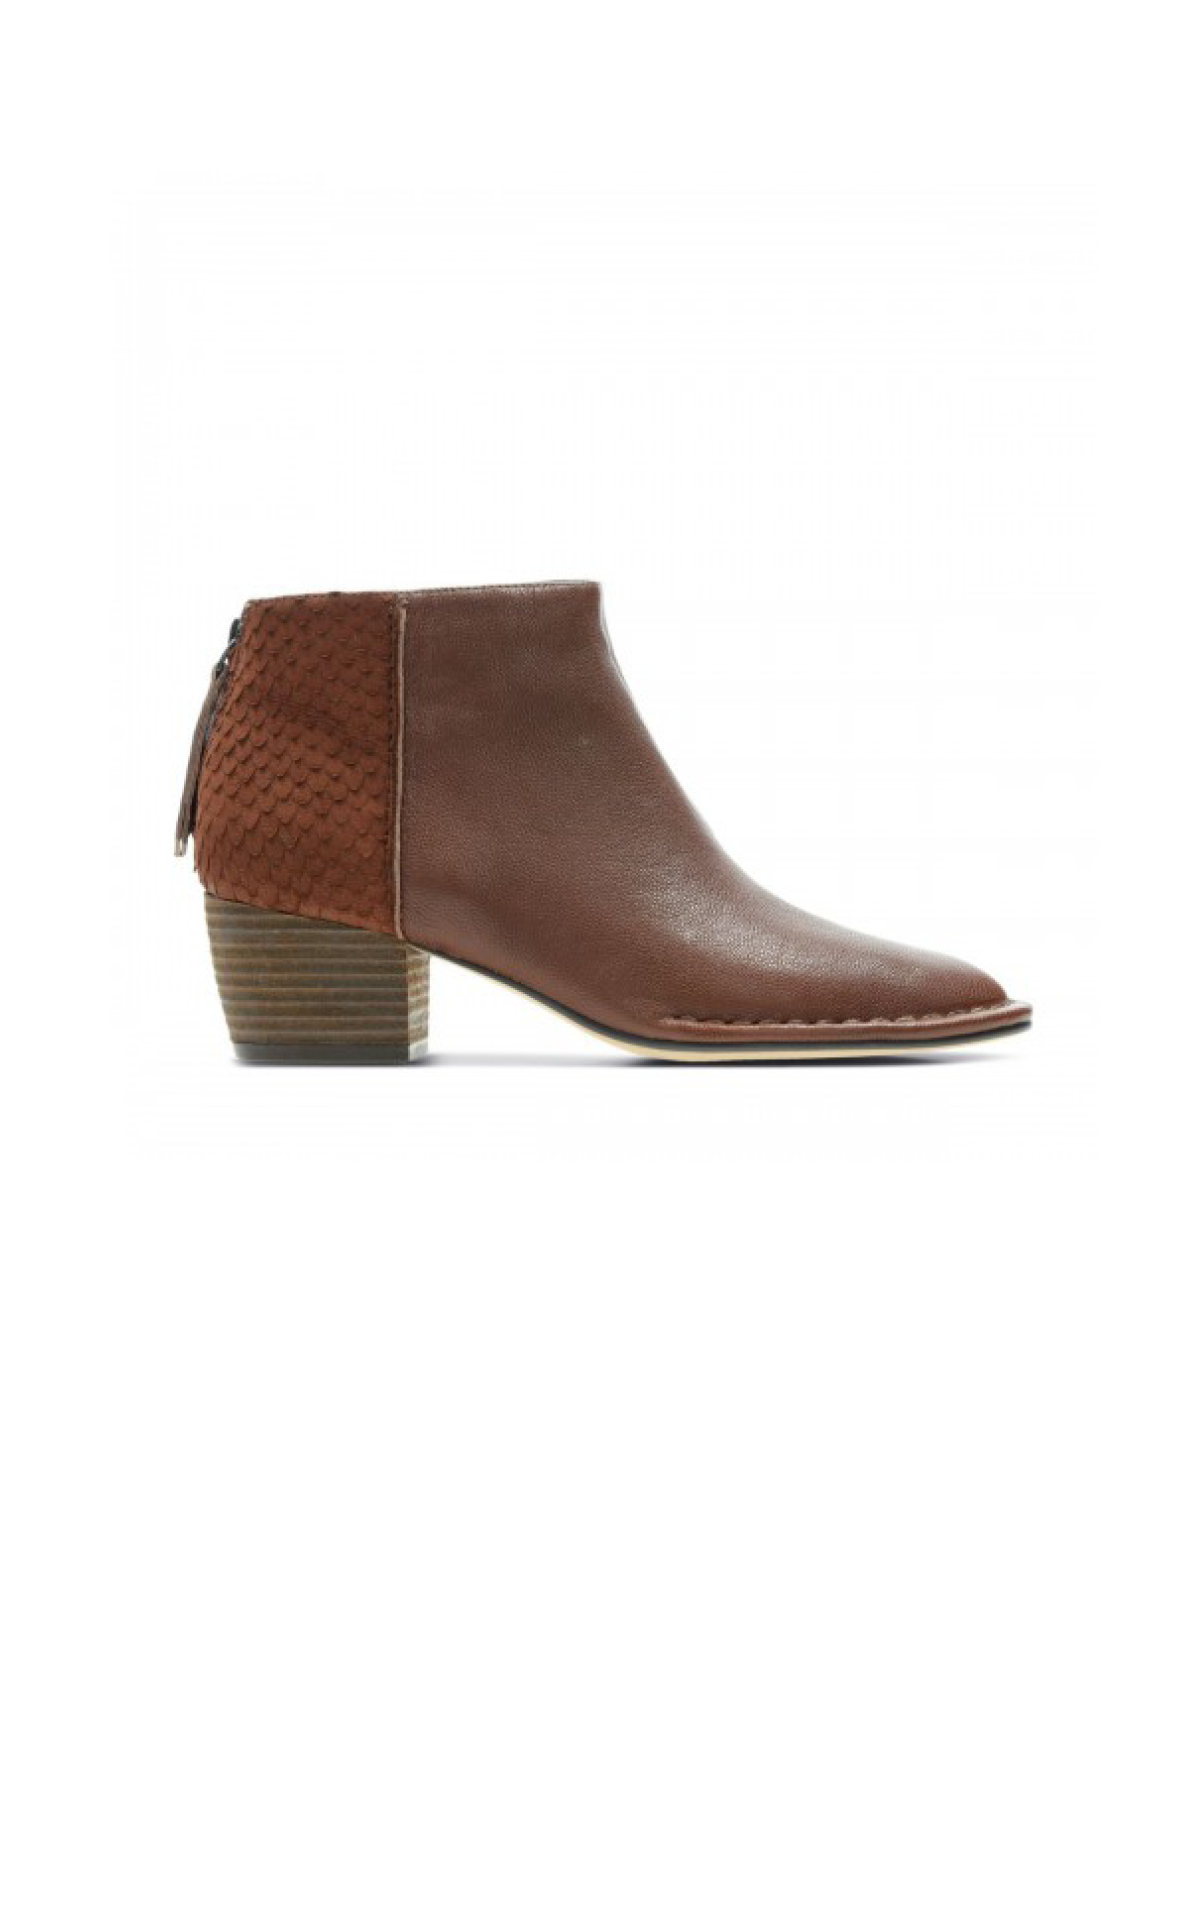 Women's Spiced Ruby ankle boot Clarks